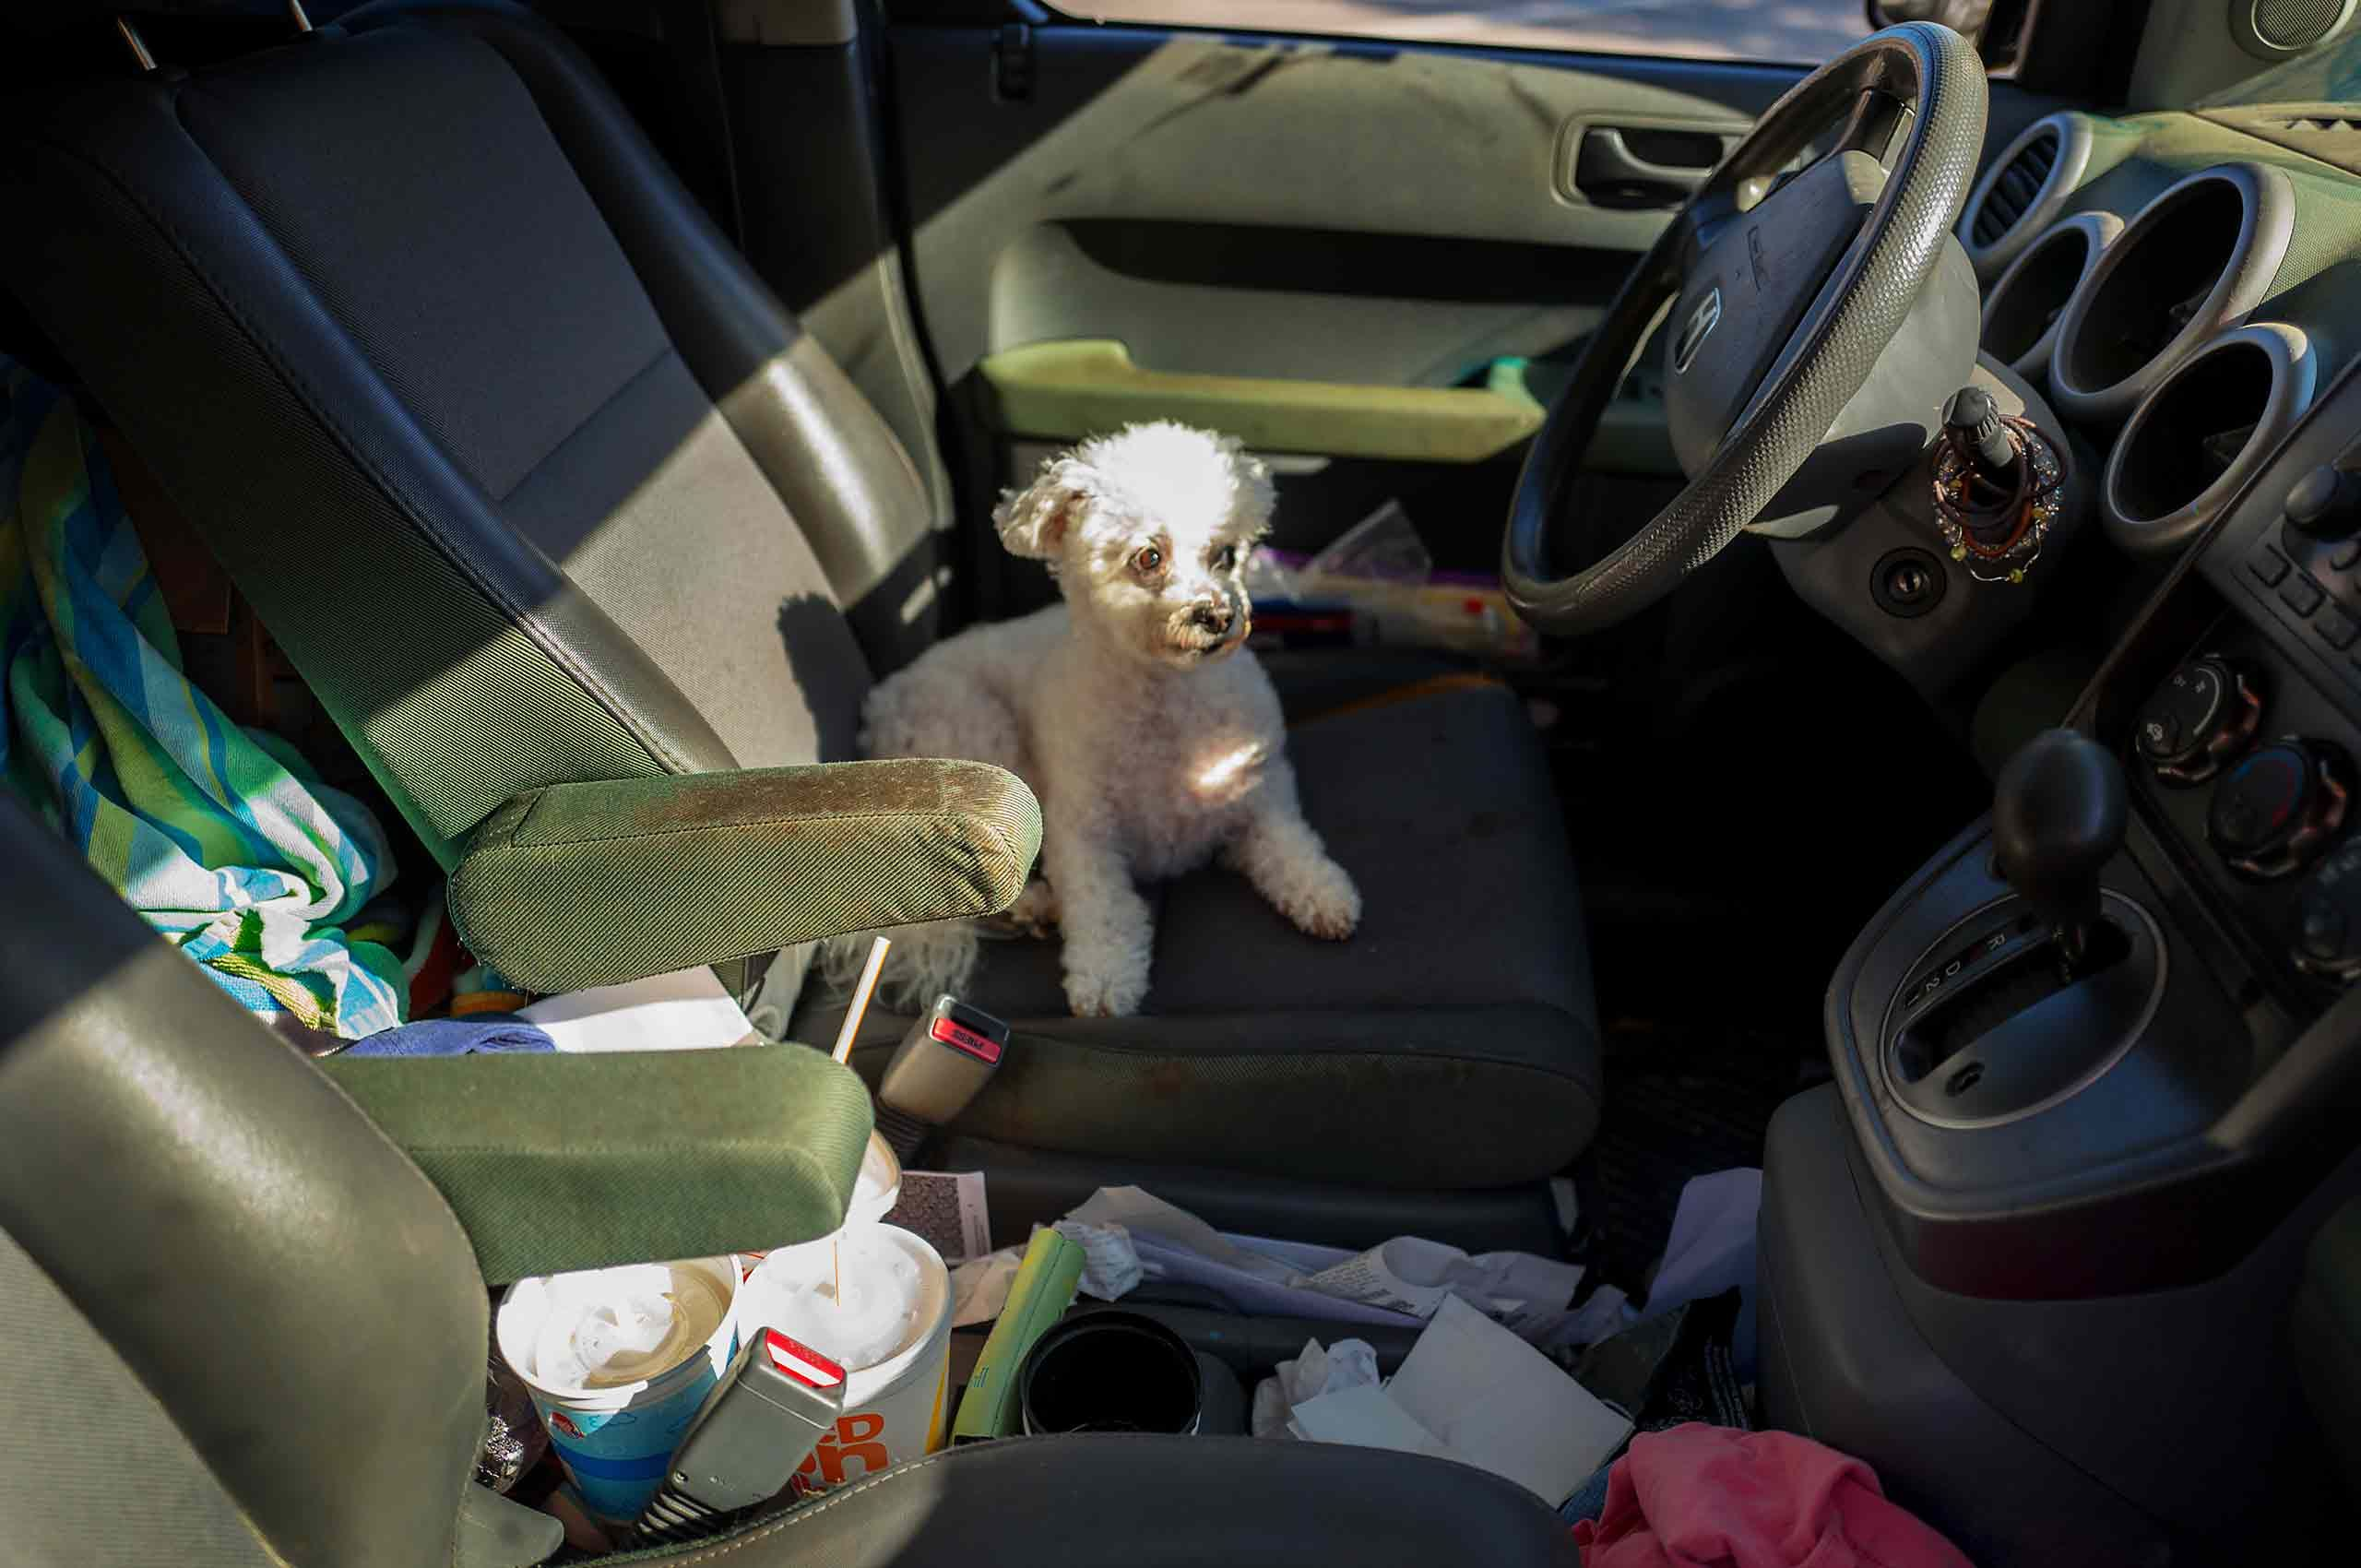 toy poodle in messy car